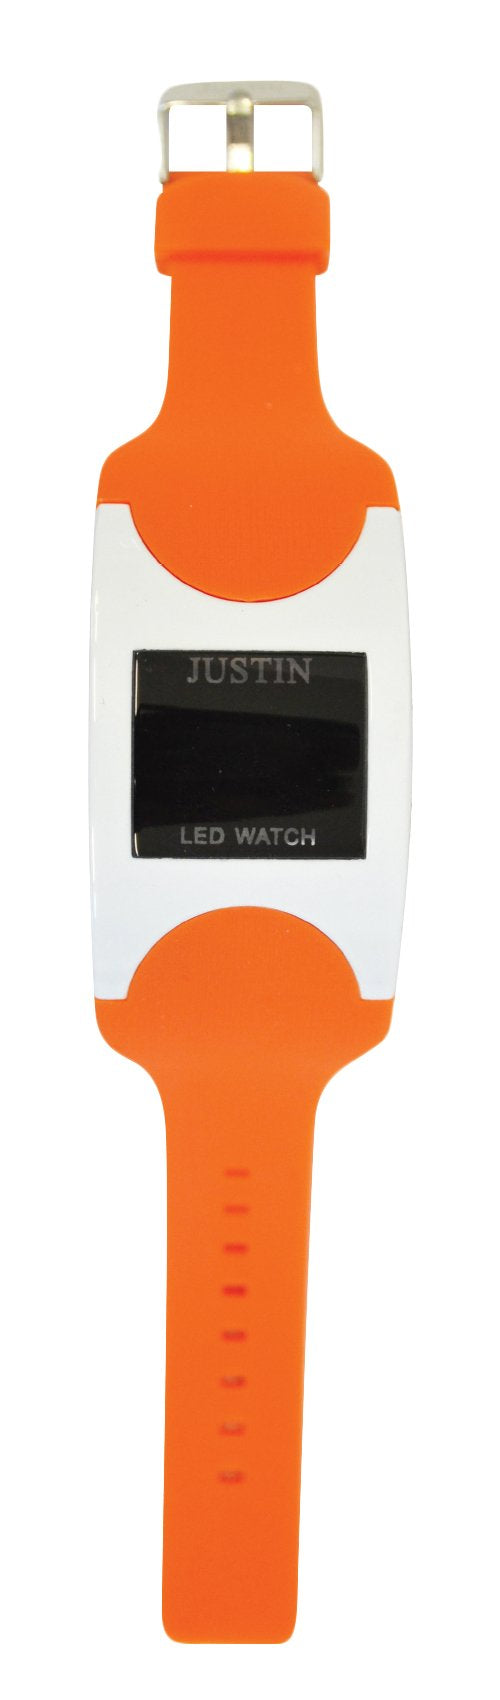 Justin LED Watch